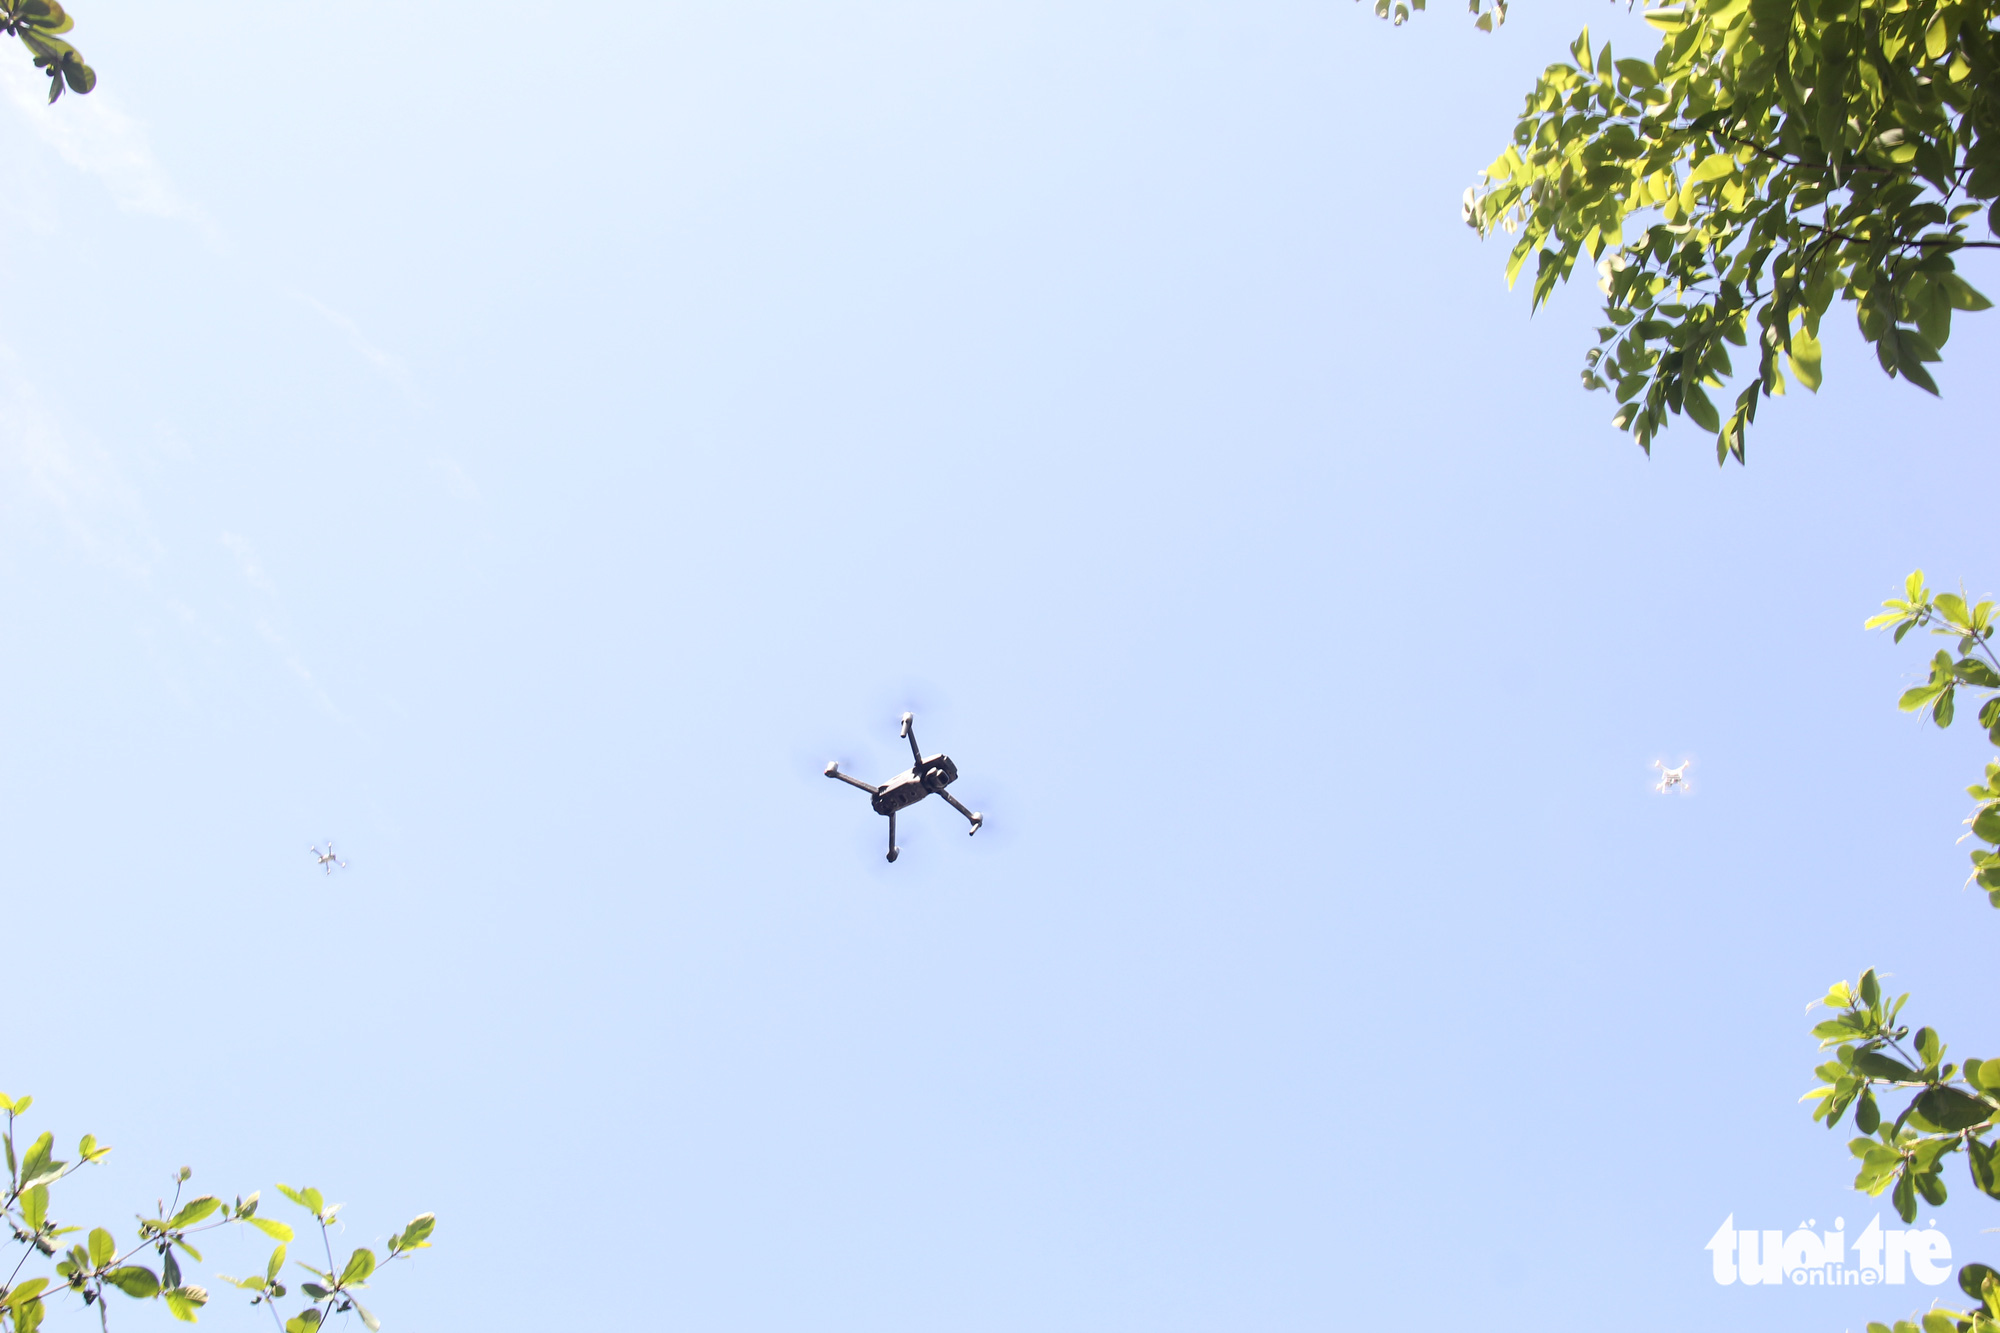 Da Nang district begins trial use of drones to monitor residents during COVID-19 pandemic